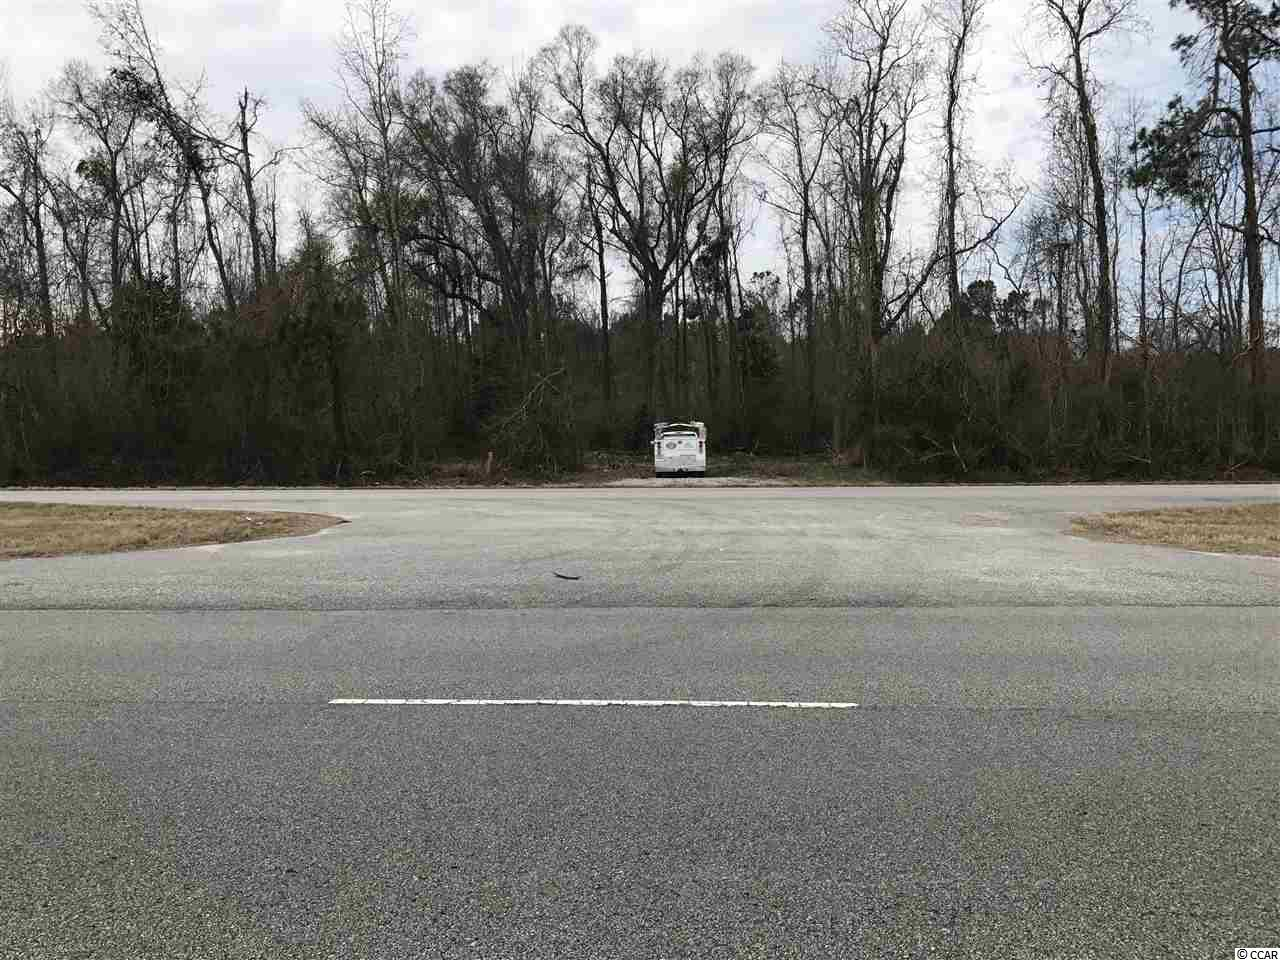 Land for Sale at 2371 W HWY 9 2371 W HWY 9 Longs, South Carolina 29568 United States